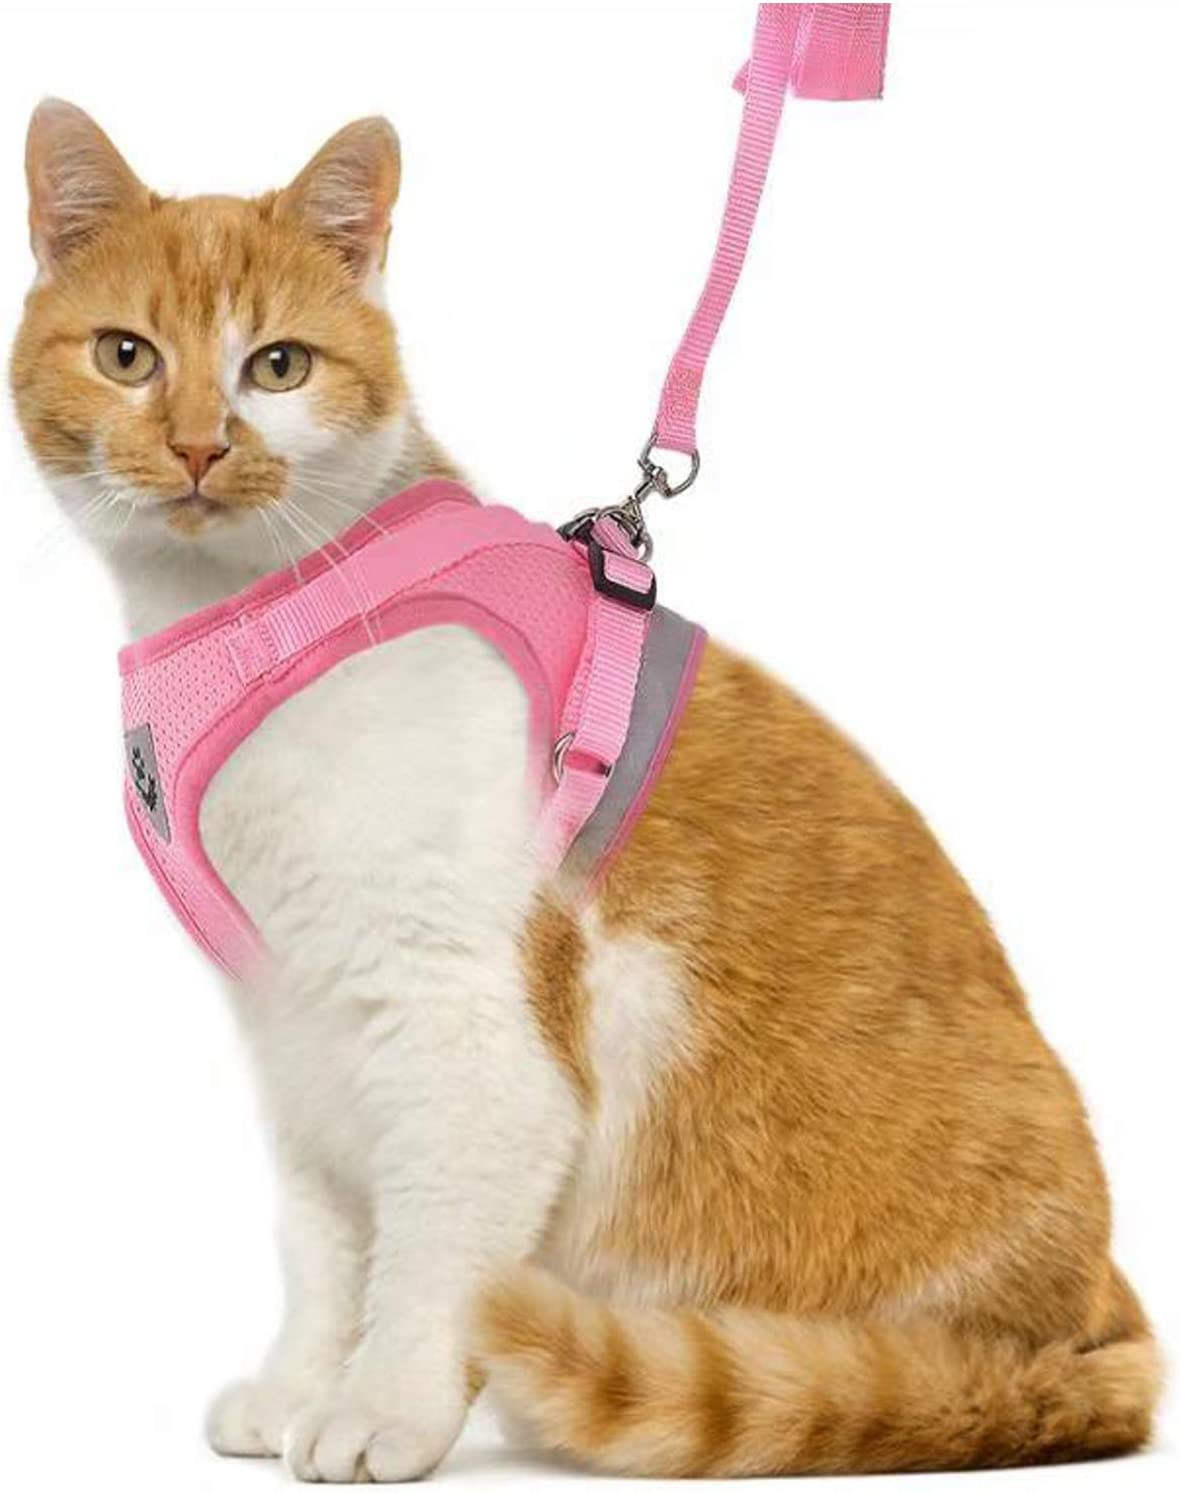 Escape Proof Cat Harnesses-Adjustable Reflective Soft Mesh Corduroy Small Dog Harnesses-Best Pet Supplies GAUTERF Kitten and Puppy Universal Harness with Leash Set